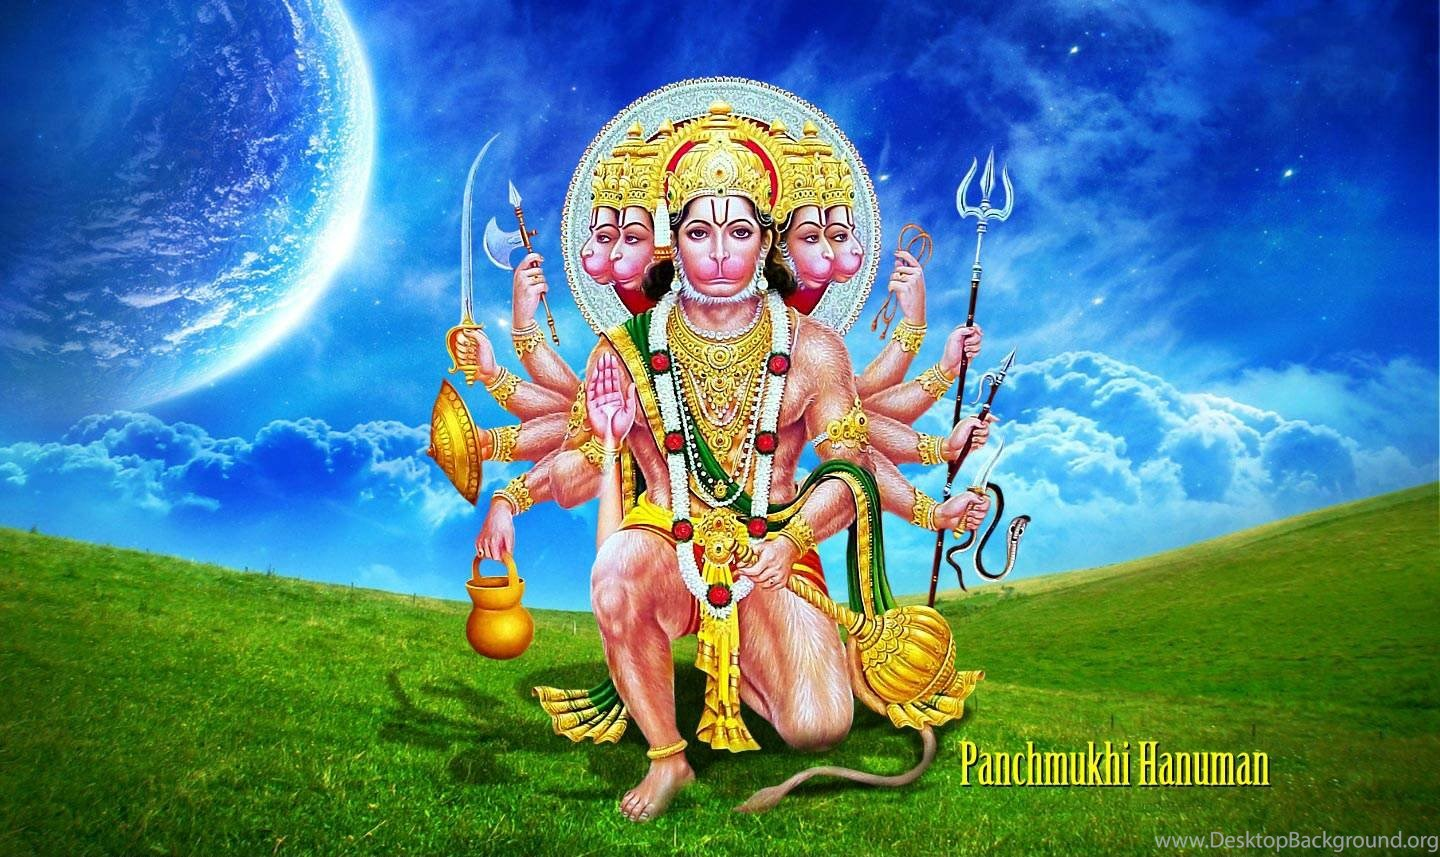 Lord Hanuman Panchmukhi Hanuman Wallpapers Hd 1080p Free Download